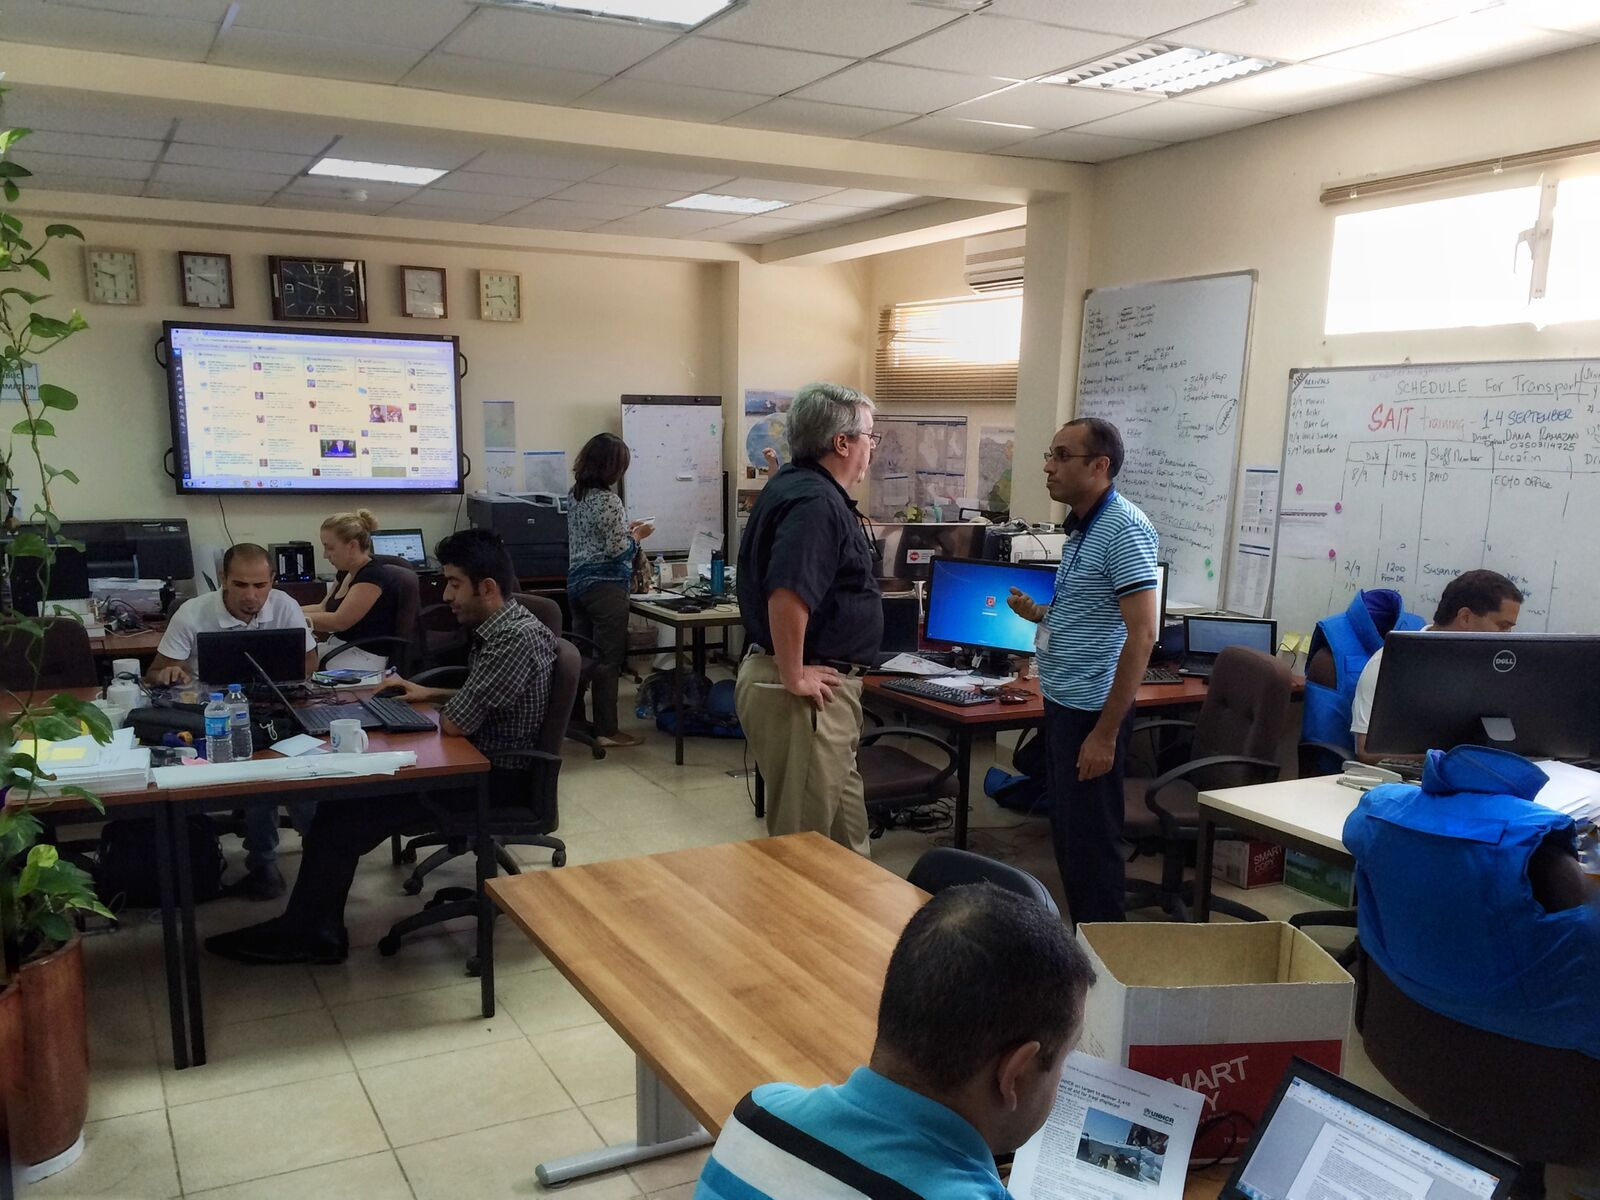 OCHA Iraq Country Office, Erbil, 2014. TweetDeck, for monitoring social media, is on the television in the background. © Brendan McDonald